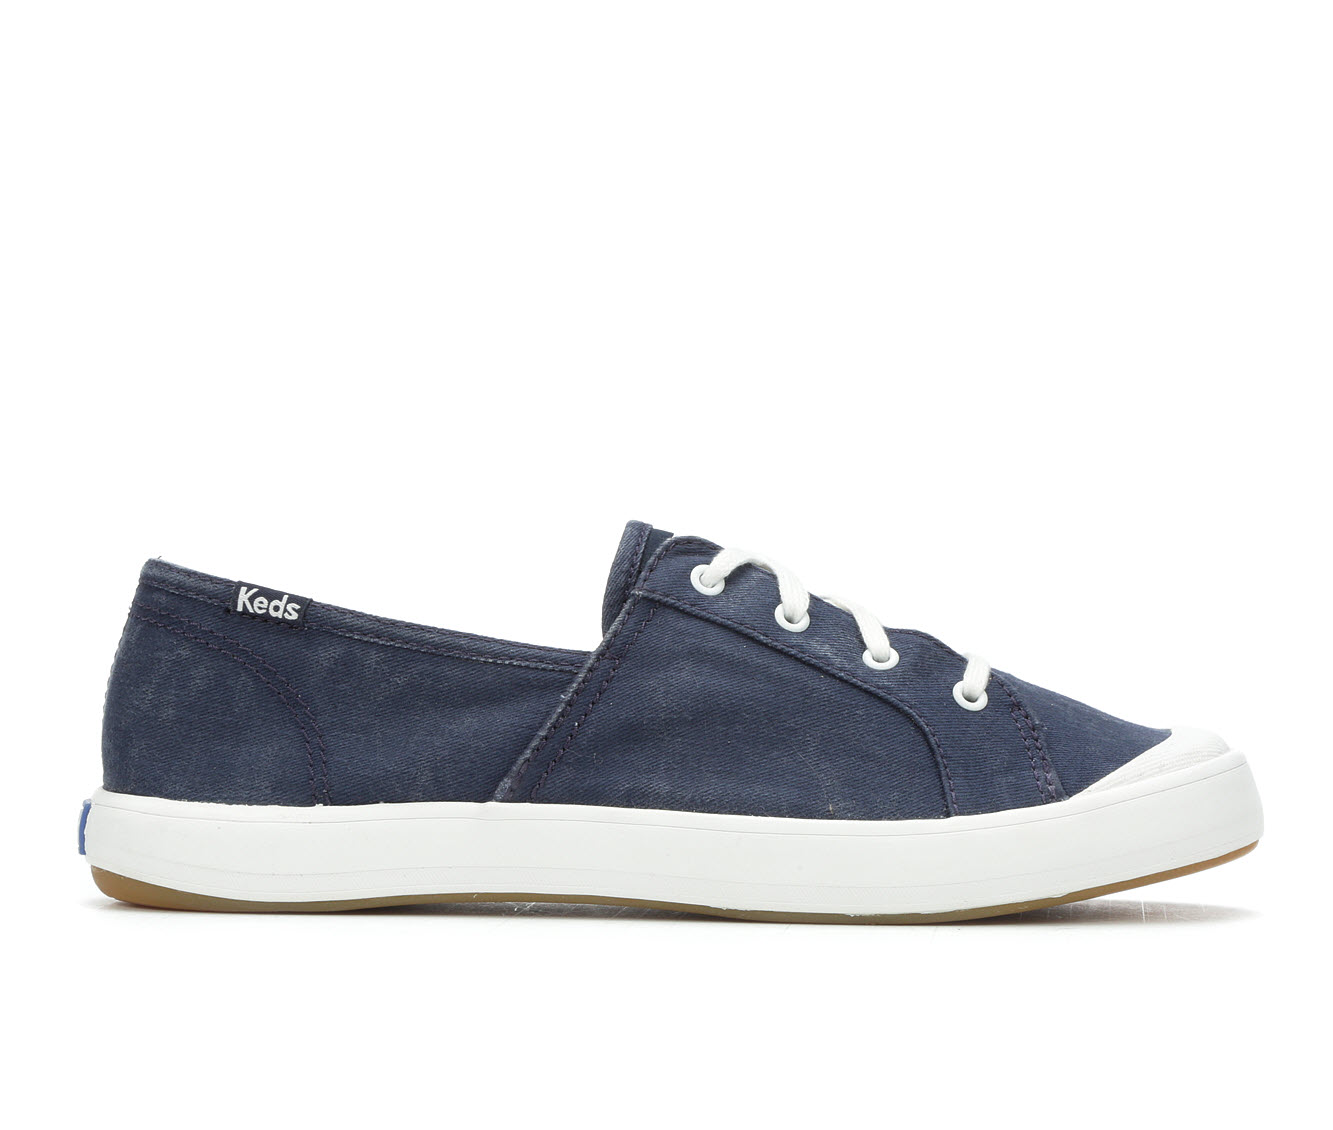 Keds Sandy Washed Women's Shoe (Blue Canvas)